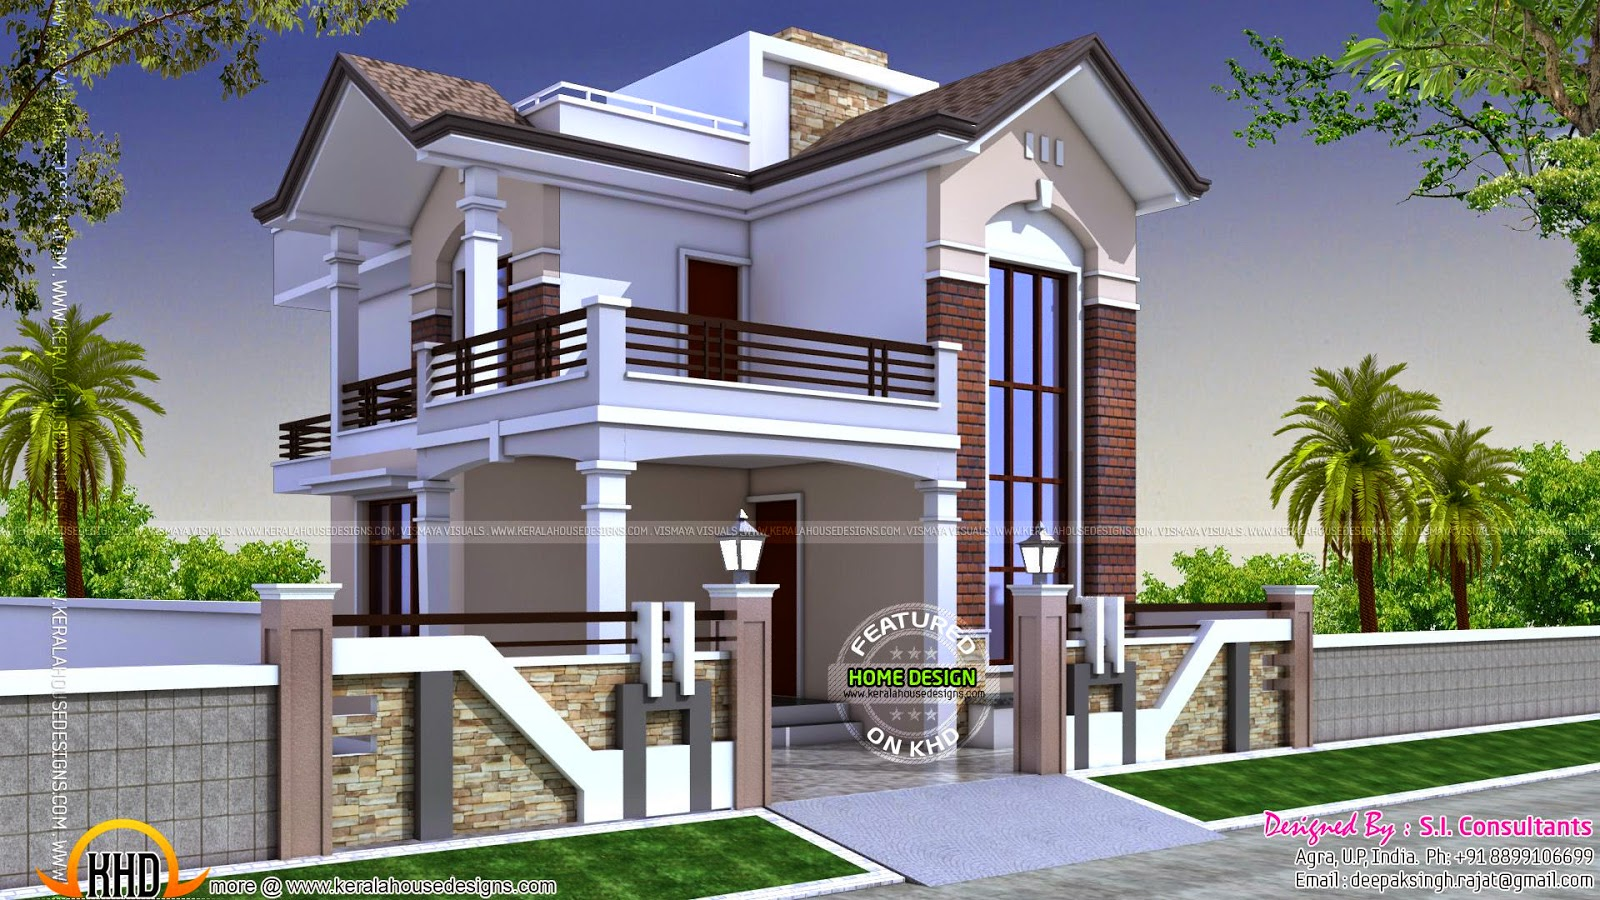 1350 Square Feet Small Double Storied House Kerala Home